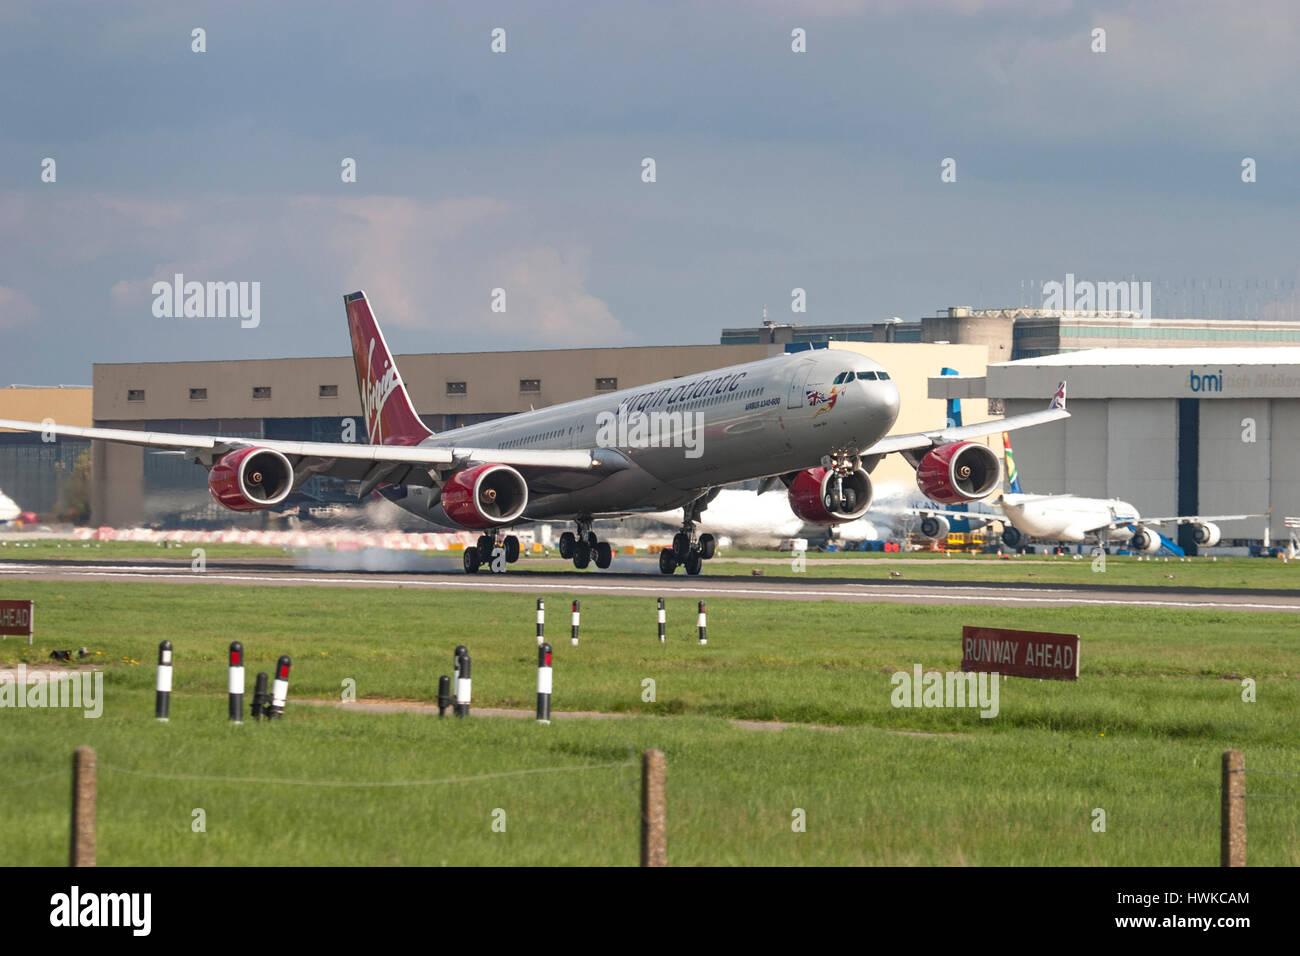 Virgin Atlantic Airbus A340 touching down at London Heathrow Airport, UK - Stock Image